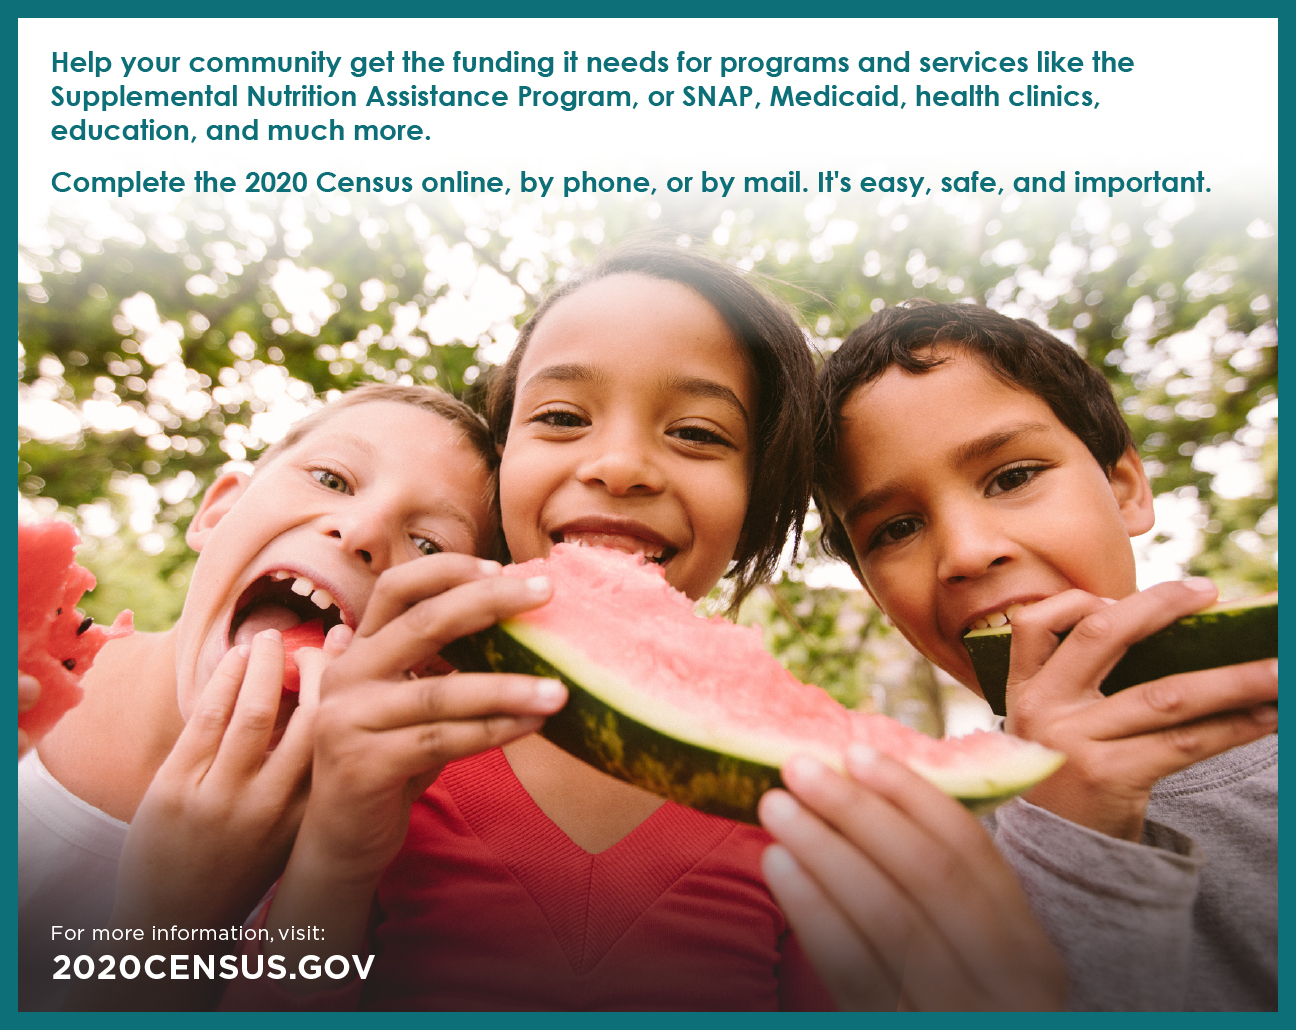 Social Media Cards USDA-7b - Help Community PIC 2020 Census